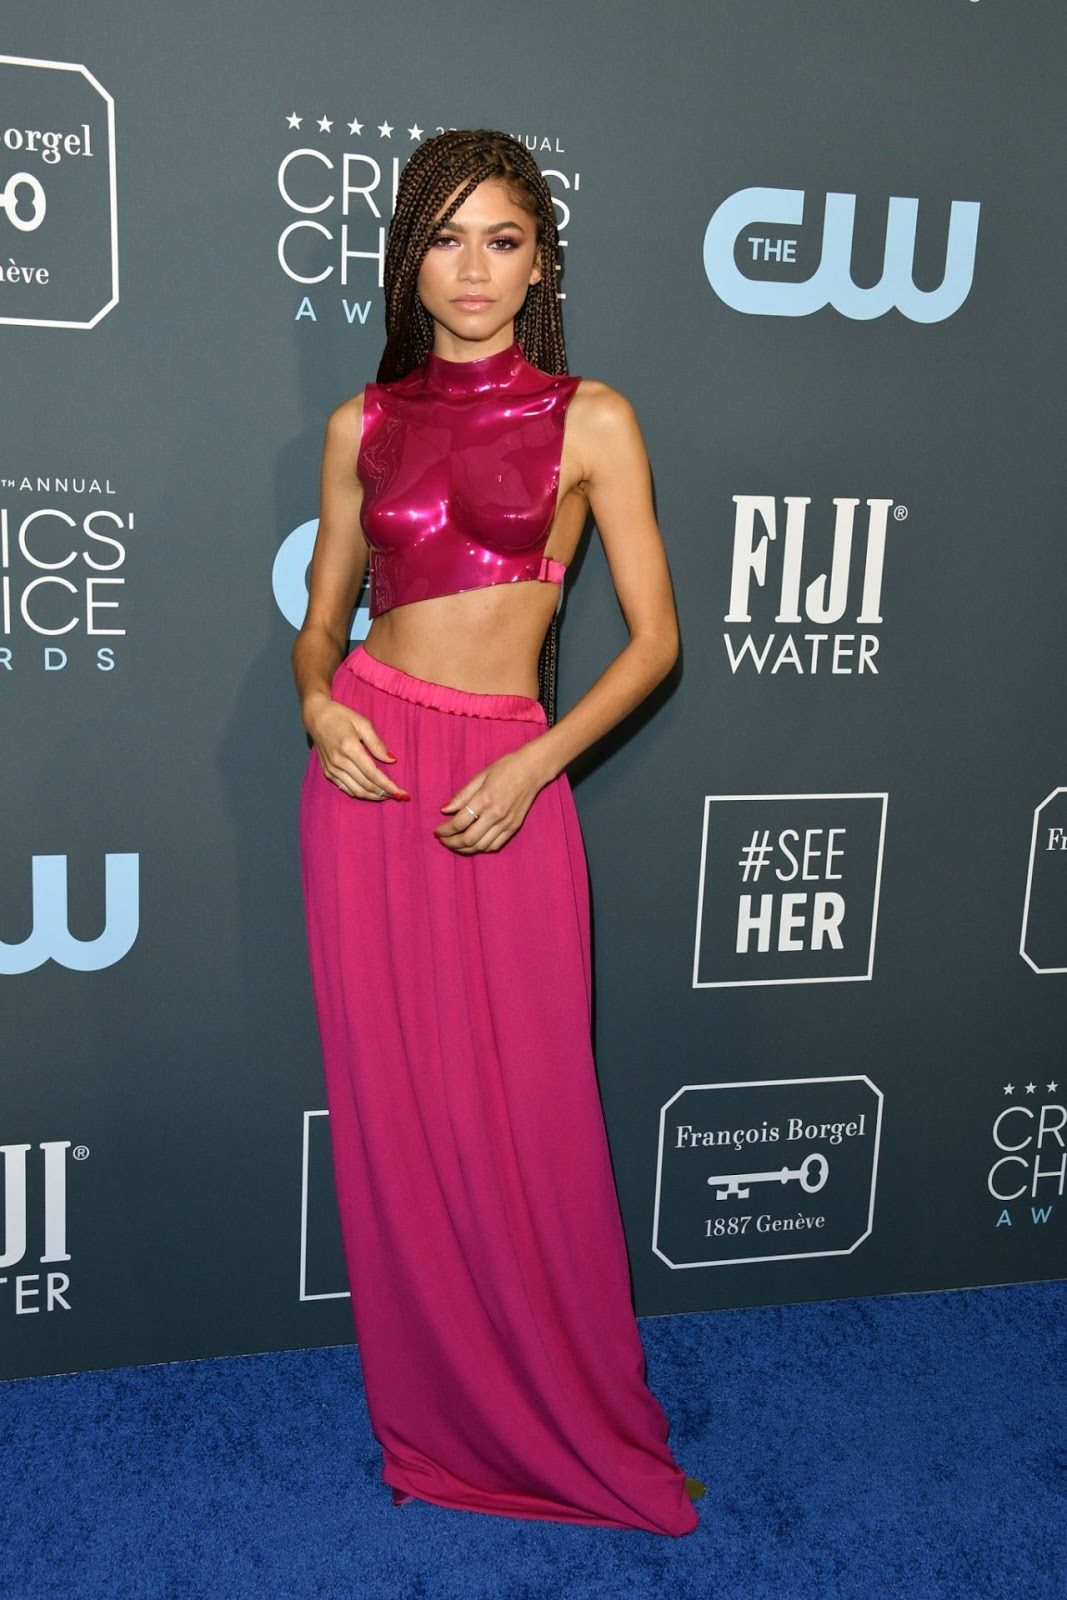 Zendaya flaunts Tom Ford breastplate at the 2020 Critics' Choice Awards in LA